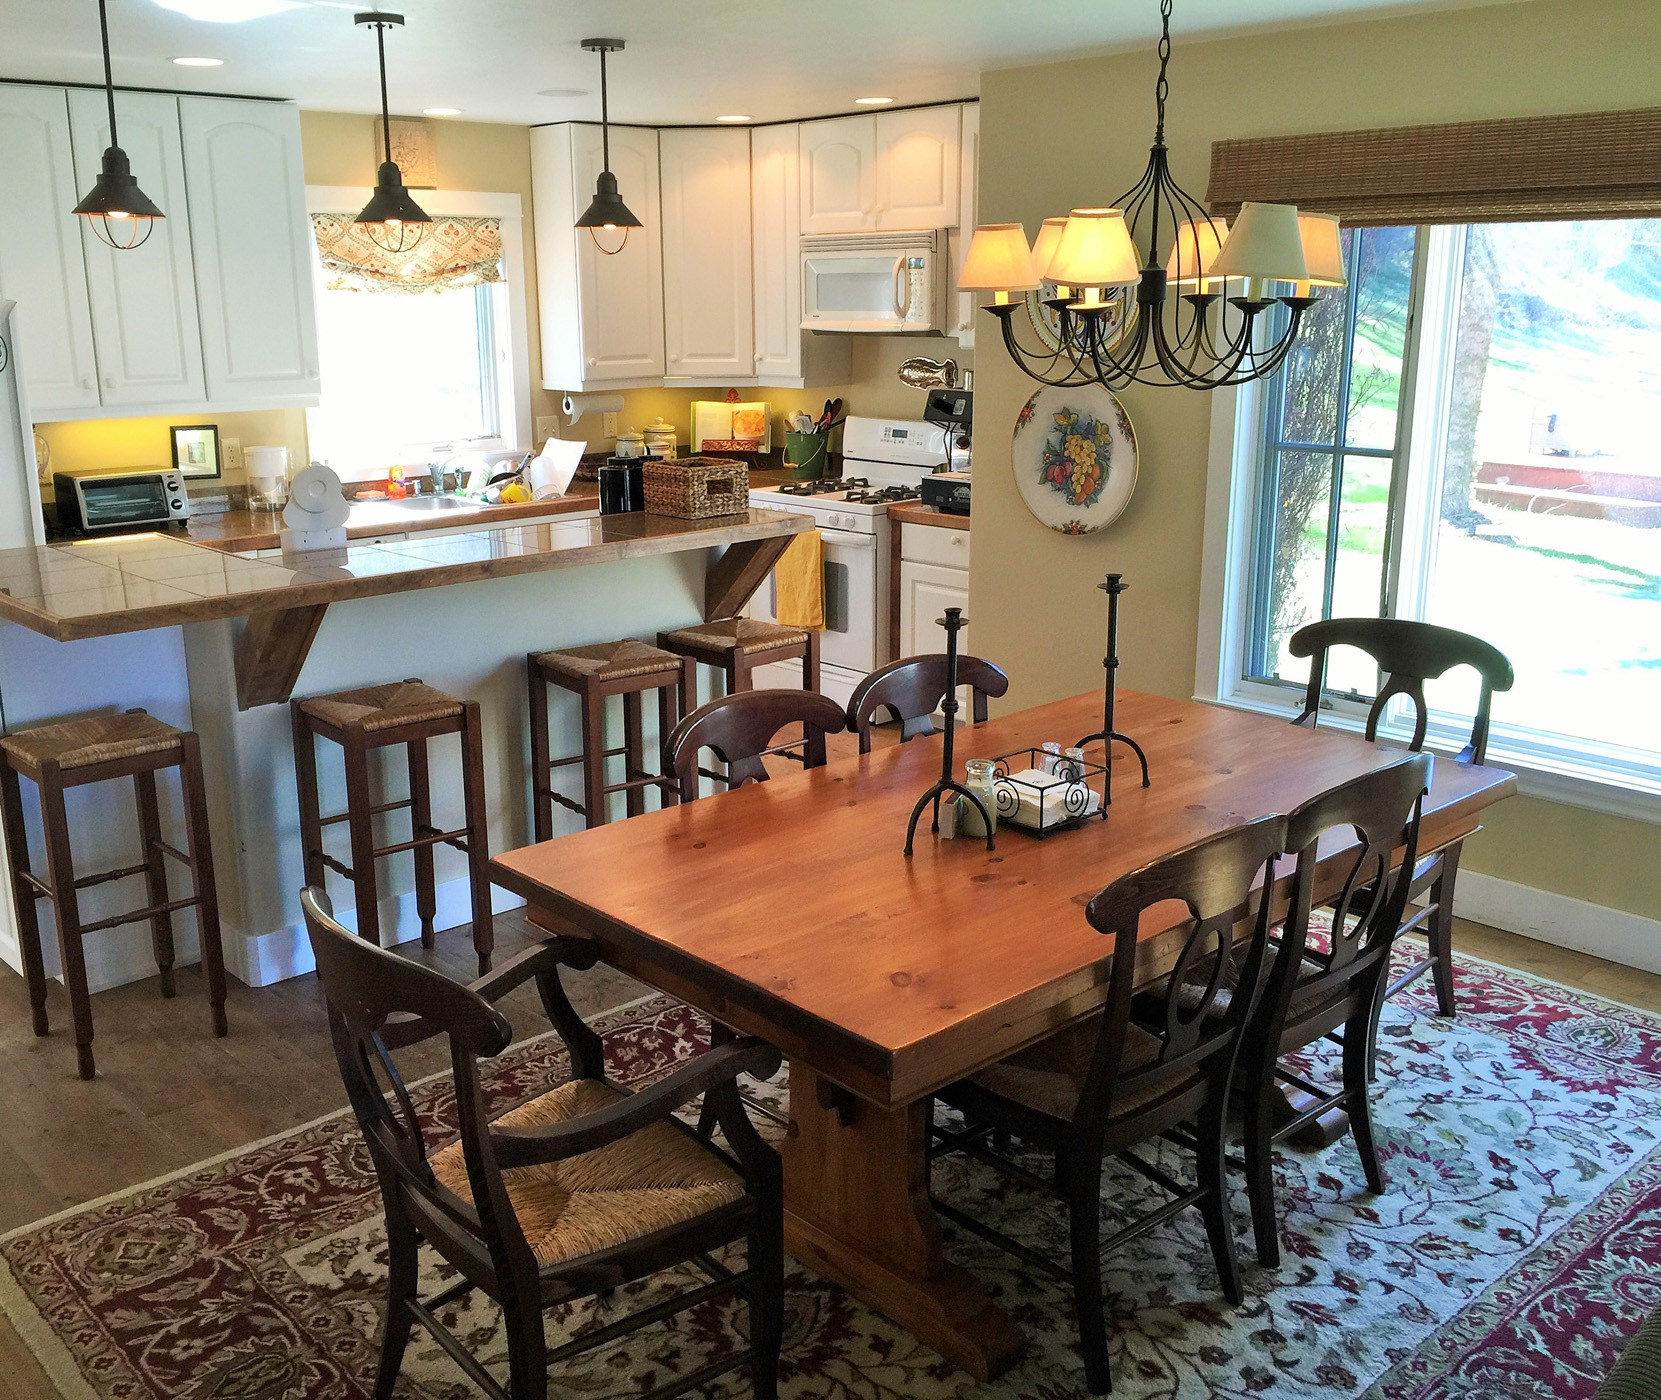 Property For Sale at 4 Bdrm. Attainable Home in Melody Ranch